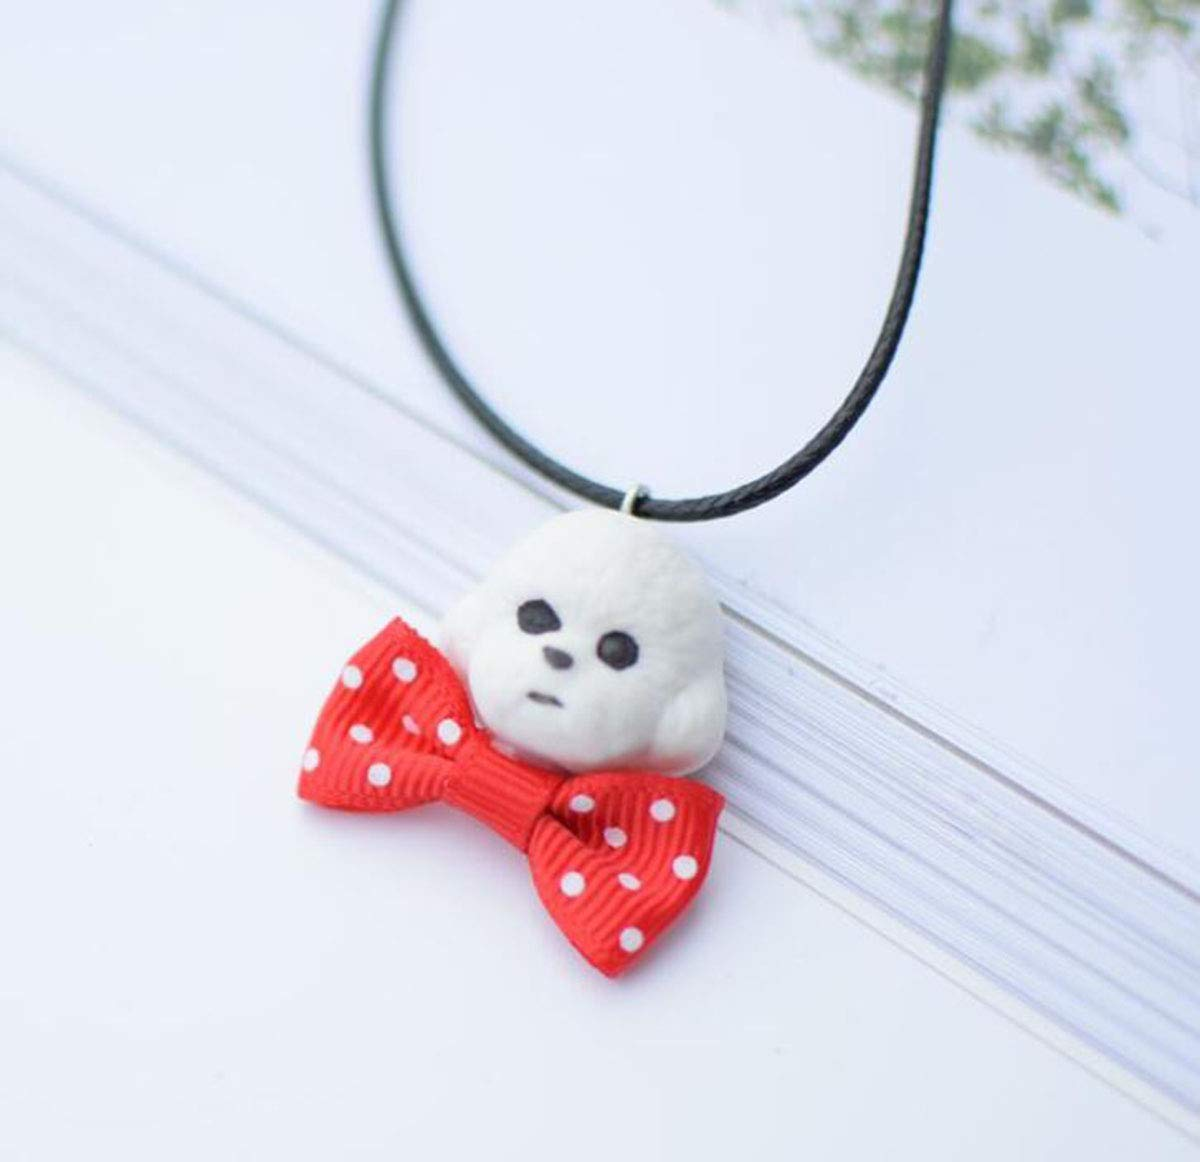 Onlyfo Cute Ceramic Dog Head with Red Bowknot Pendant Necklace with Jewelry Box,Dog Necklace for Women,Child (White) by Onlyfo